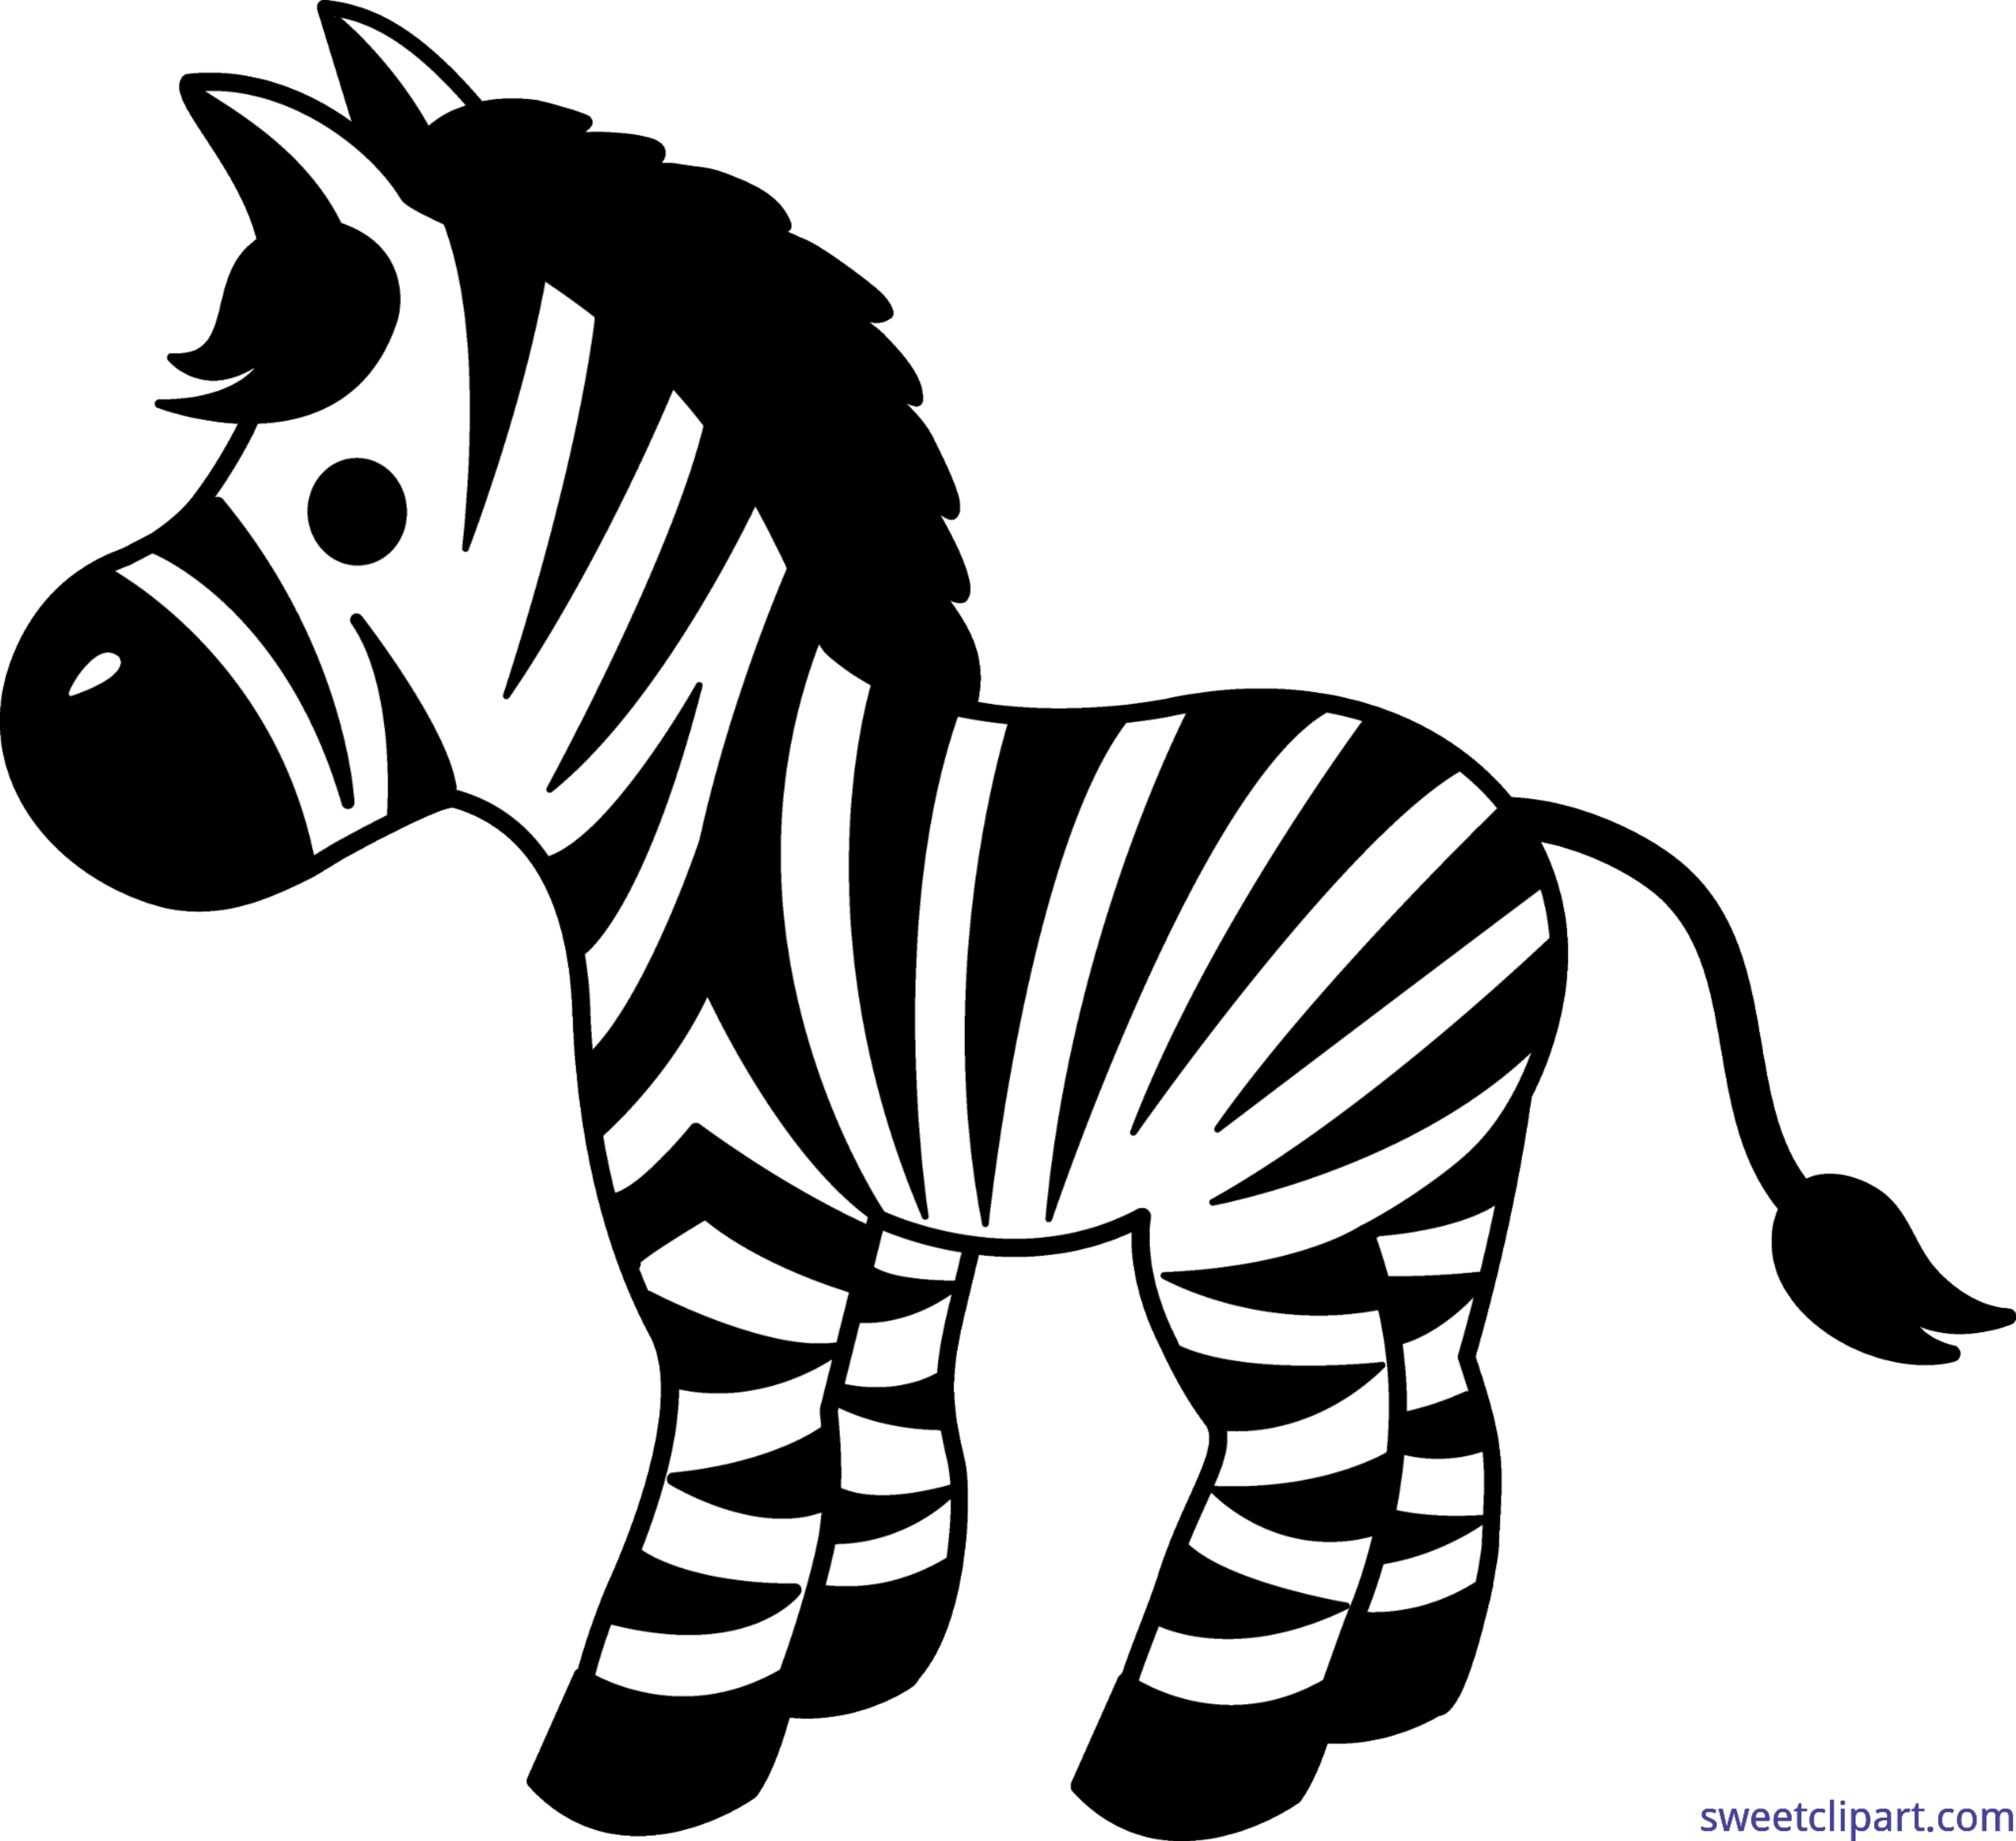 cute zebra clip art sweet clip art rh m sweetclipart com Cute Zebra Face Cute Cartoon Zebra